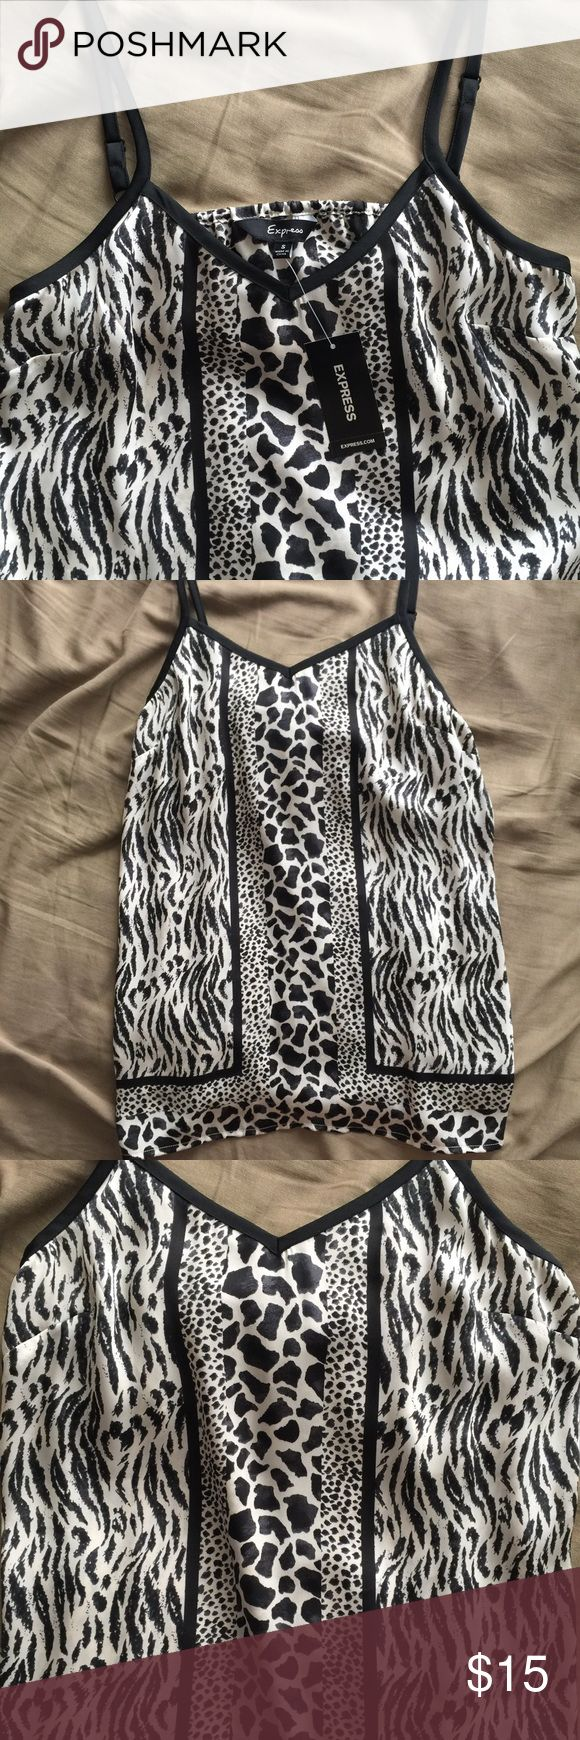 Silky Animal Print Cami Cute camisole with leopard and giraffe print combination Express Tops Camisoles